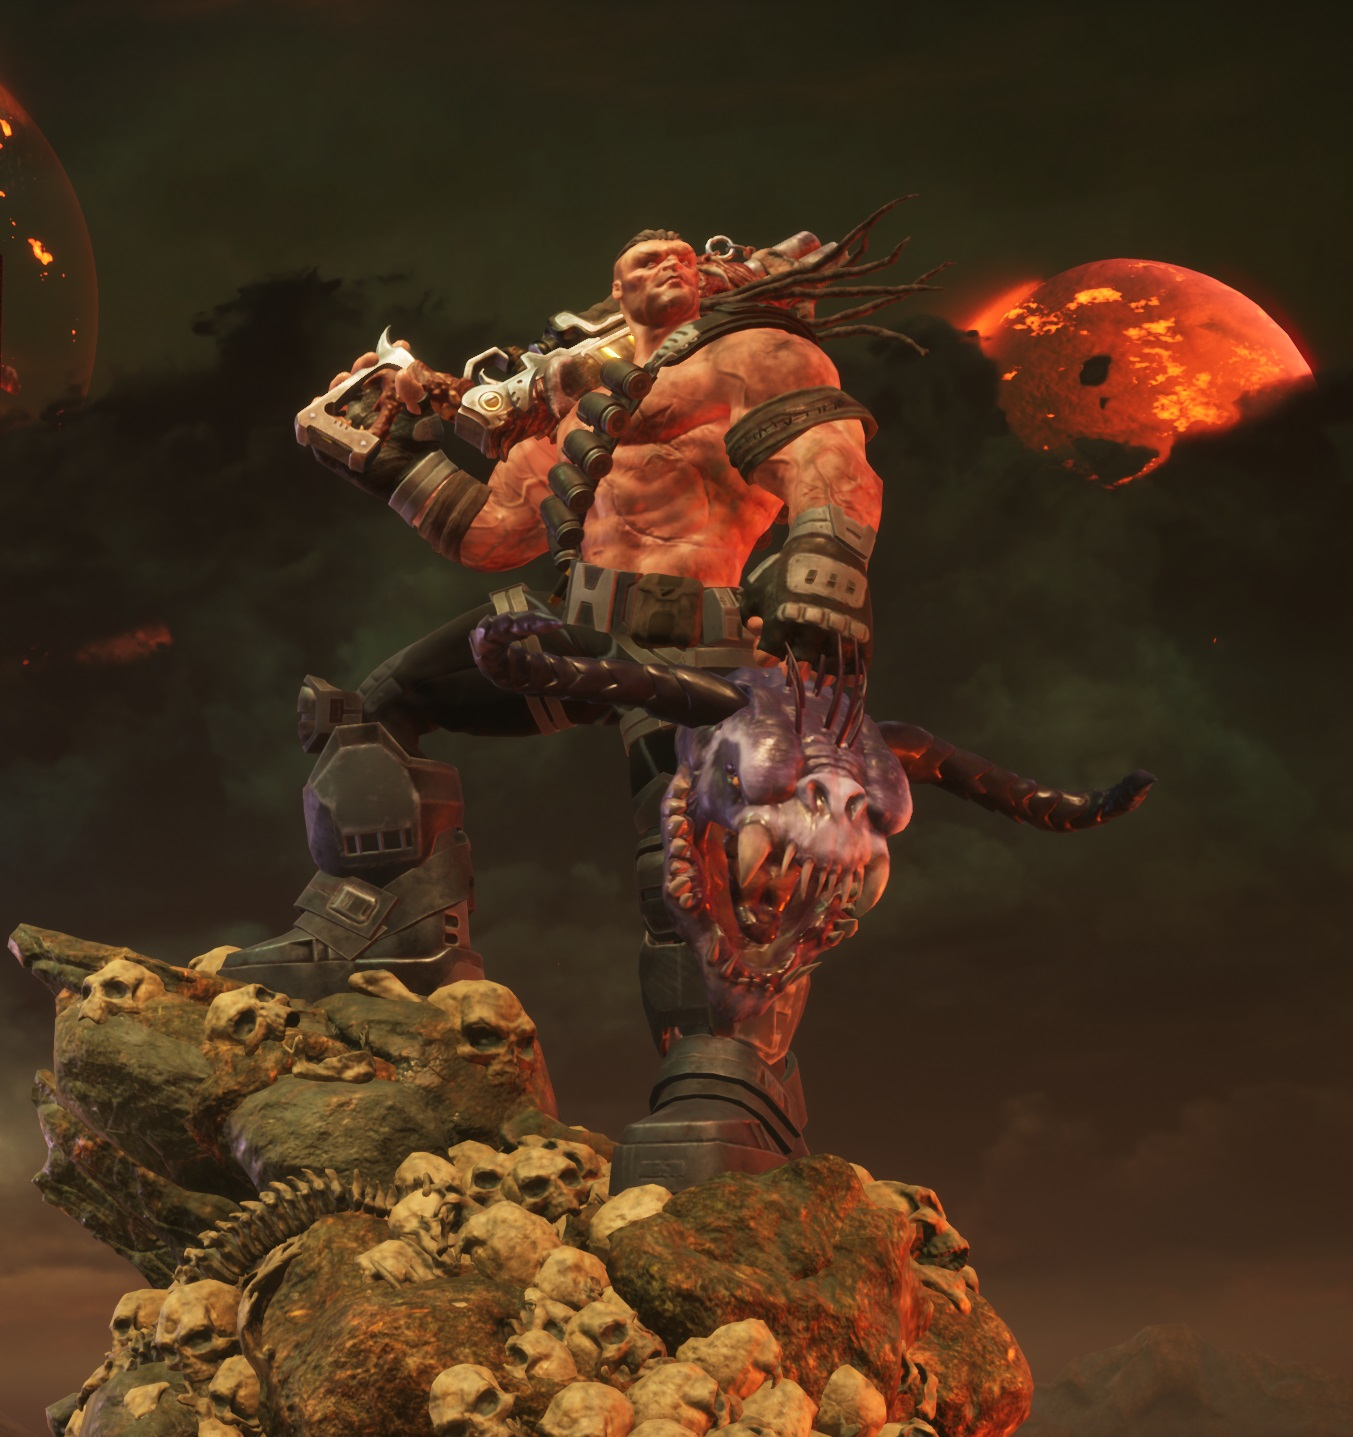 Hellgore is the smart-mouthed protagonist in Hellbound.